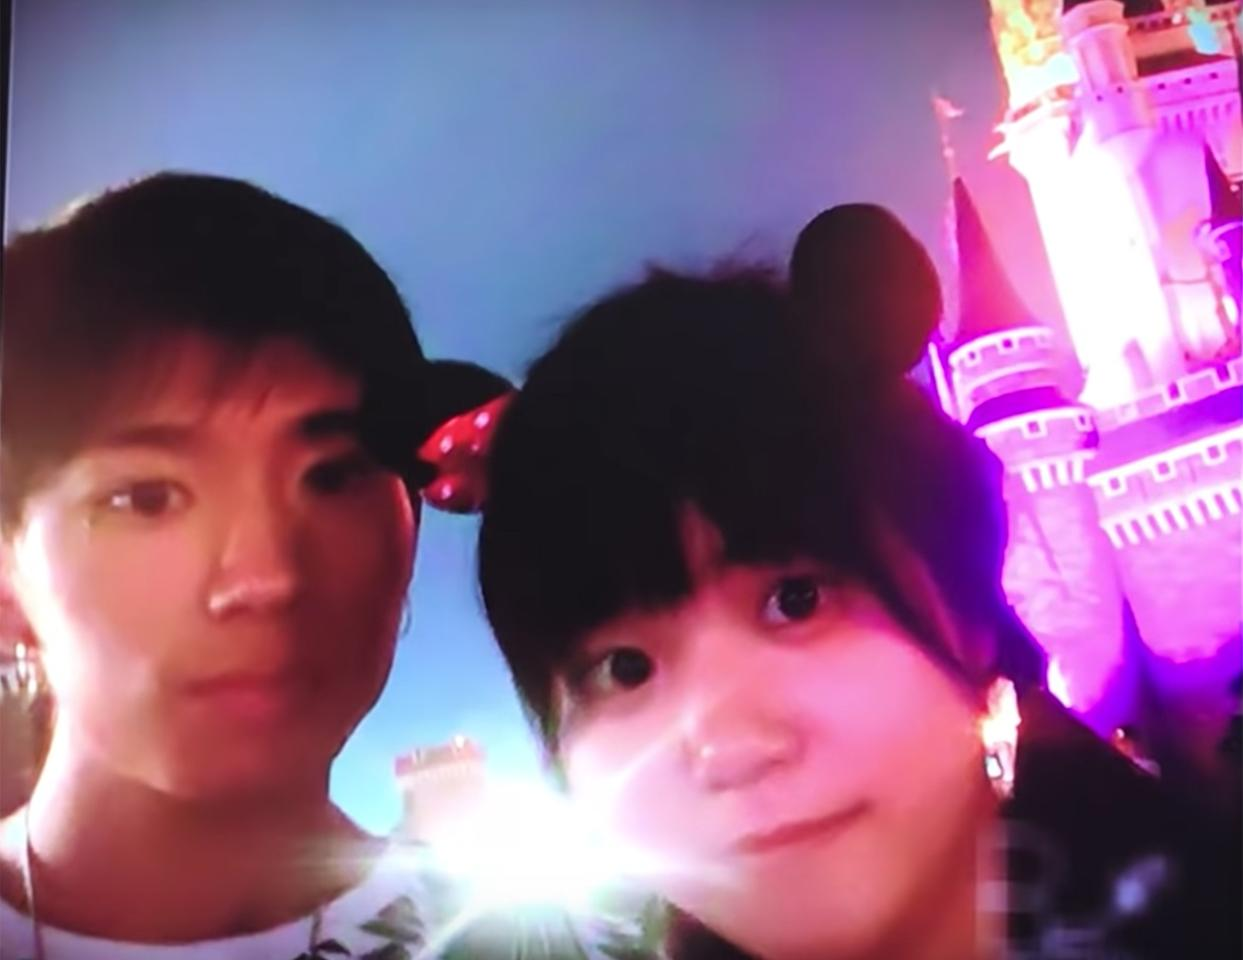 """Li Huayu, 22, took it upon himself to make his 24-year-old fiancée, Maruyama, <a href=""""https://people.com/human-interest/japanese-man-makes-fiancee-fall-in-love-with-him-every-day-she-suffers-amnesia/"""">fall in love with him every day for two months</a> ever since she was hit by a car while riding her bike to work in February of last year, just five months before they were set to marry. After the accident, Maruyama experienced amnesia, she said in an interview on the Japanese television show, <a href=""""https://twitter.com/tbs_yumesp/status/1084733572668248064"""">TBS' Yume Special.</a>  Every morning, Huayu would remind her who he was, how they had fallen in love and what had happened to her in the accident. After witnessing his commitment, Maruyama decided to propose to Huayu, and reaffirm that her love for him had not gone away. That's when she enlisted the show to help her propose at Disneyland.  """"My doctor has told me due to my amnesia my memory loss may be irreversible, there's a 50 percent chance,""""Maruyama said in her proposal, which was filmed by the show. """"Despite that, will you be with me?""""  Huayu immediately said yes.  """"I promise to not go anywhere and she will be well taken care of by me,"""" Huayu said while on the show. """"There's a possibility that she may forget again or she may remember like she has been. But even if she loses her memory again, I won't leave her side. I chose her."""""""